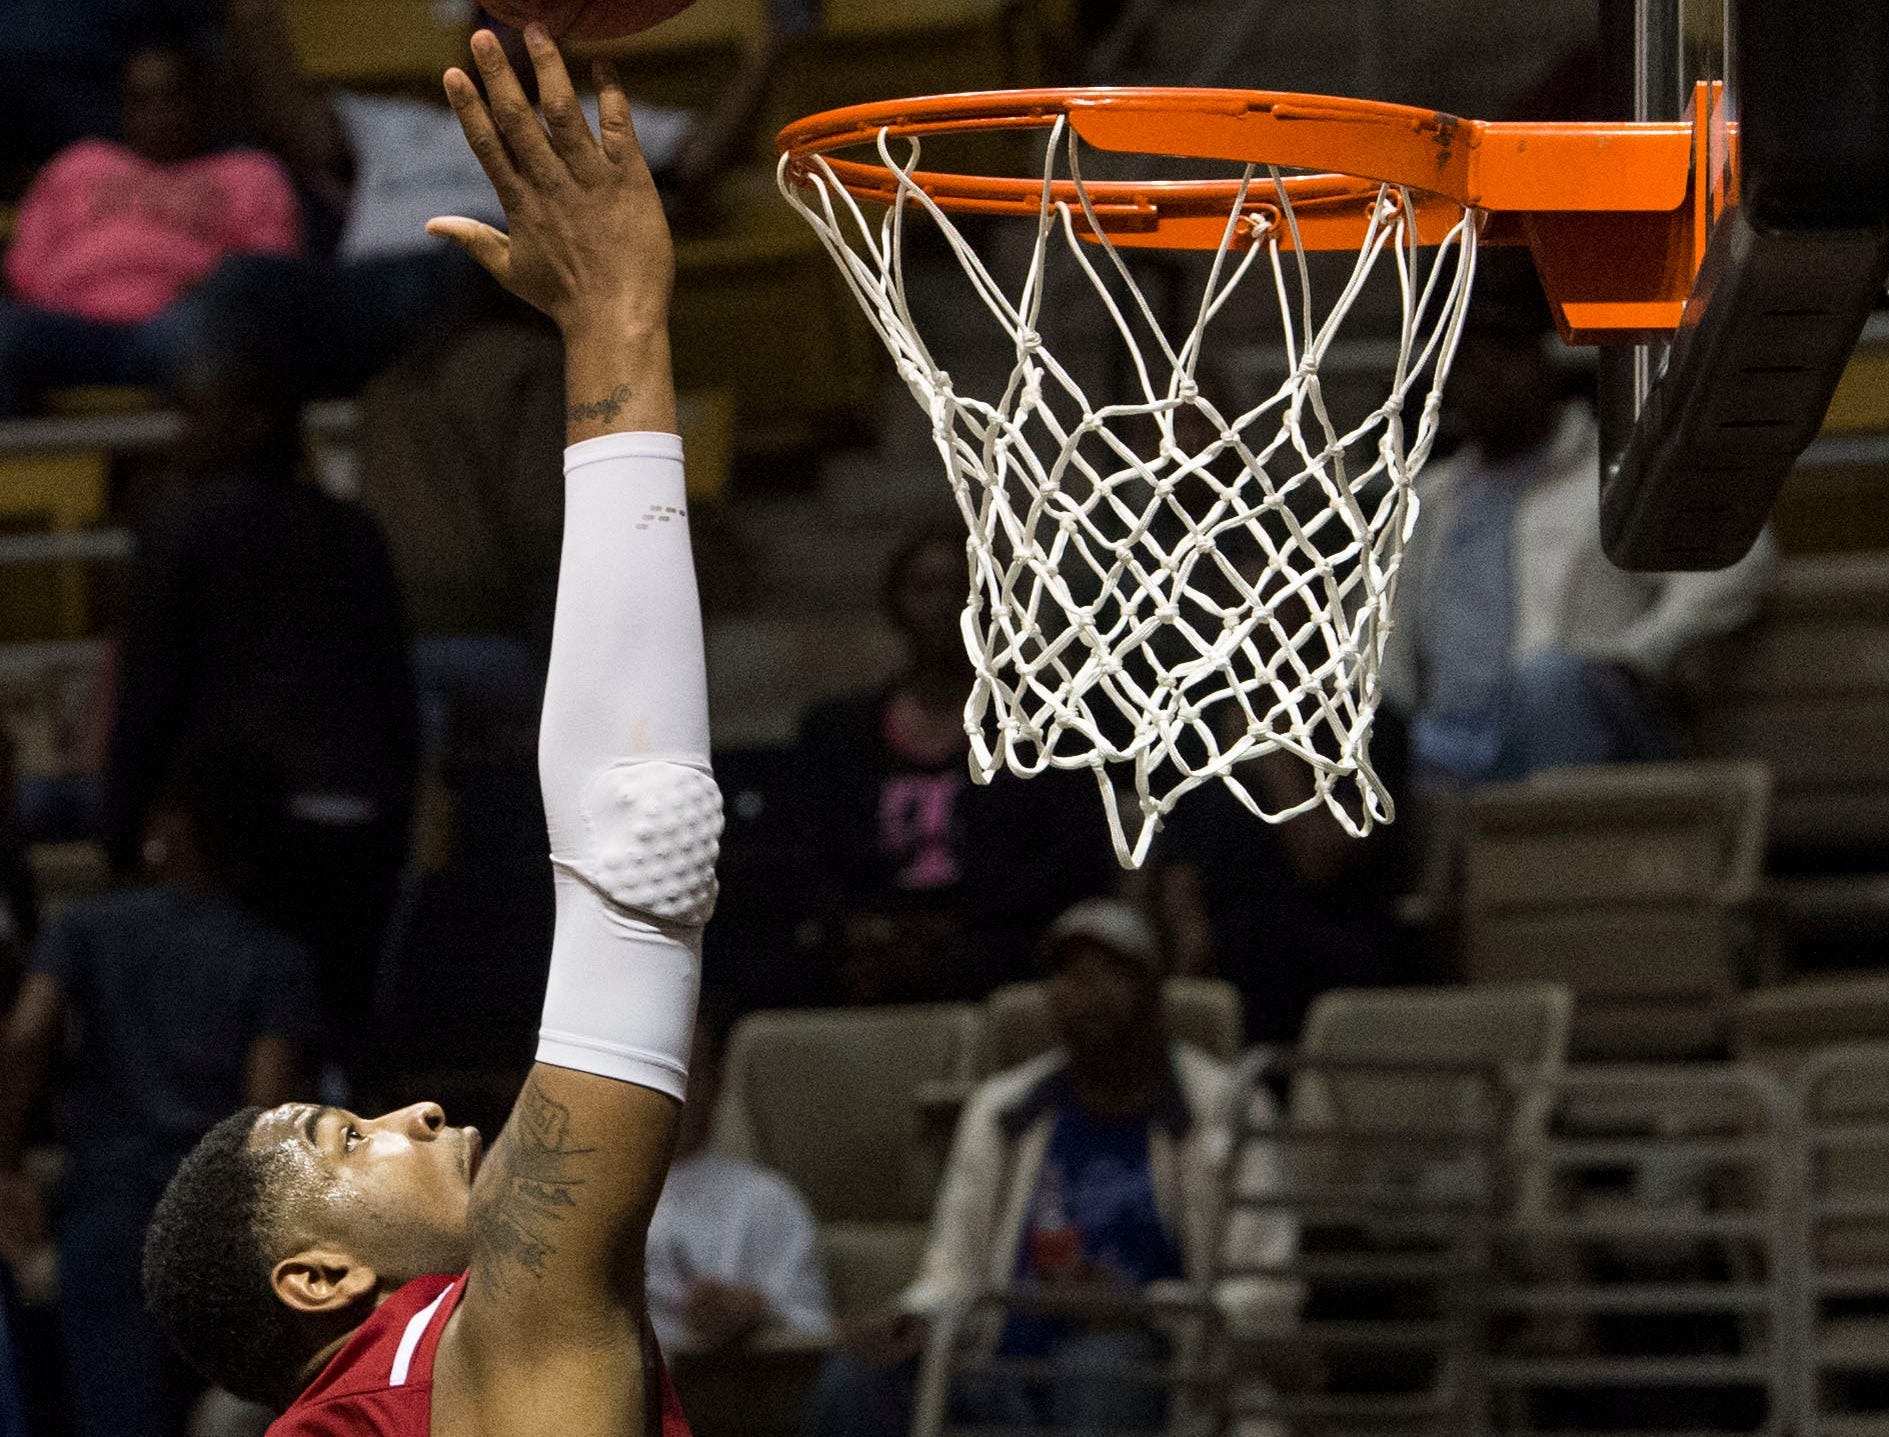 Alabama's Demond Robinson (22) goes up for a layup during the Alabama-Mississippi All-Star game at the Dunn-Oliver Acadome in Montgomery, Ala., on Friday, March 15, 2019. Mississippi All-stars leads the Alabama All-stars 47-39 at halftime.